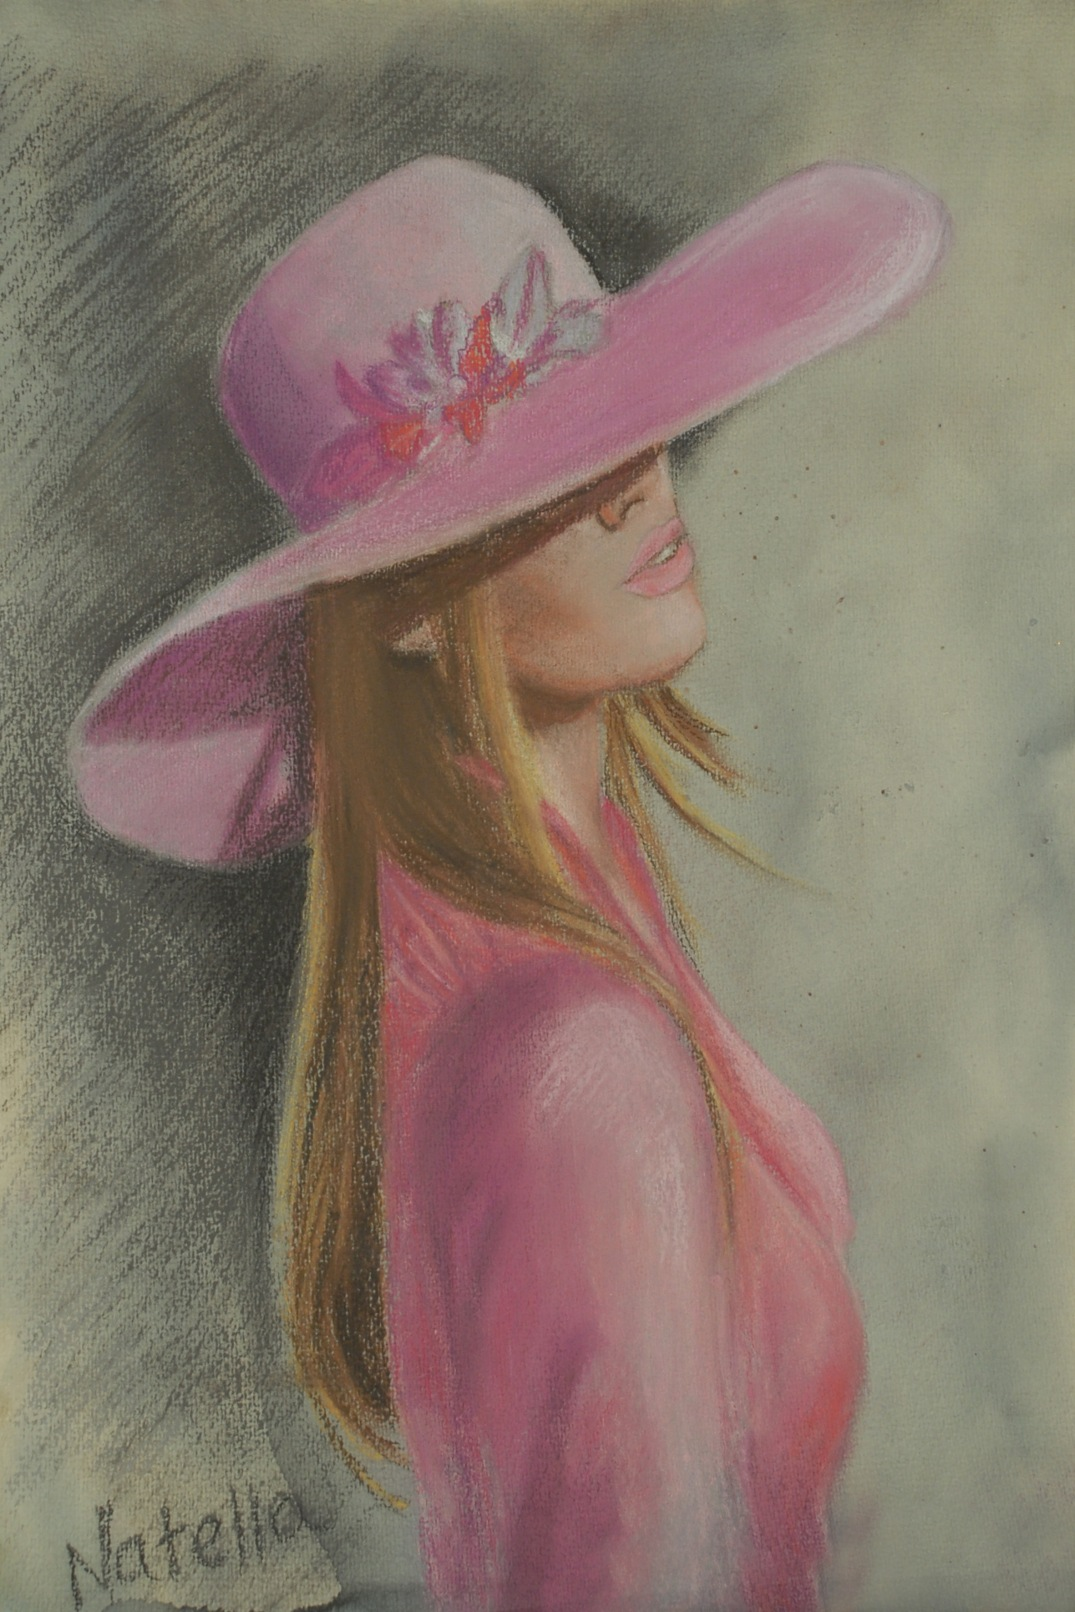 Lady in the hat by Natella Mammadova